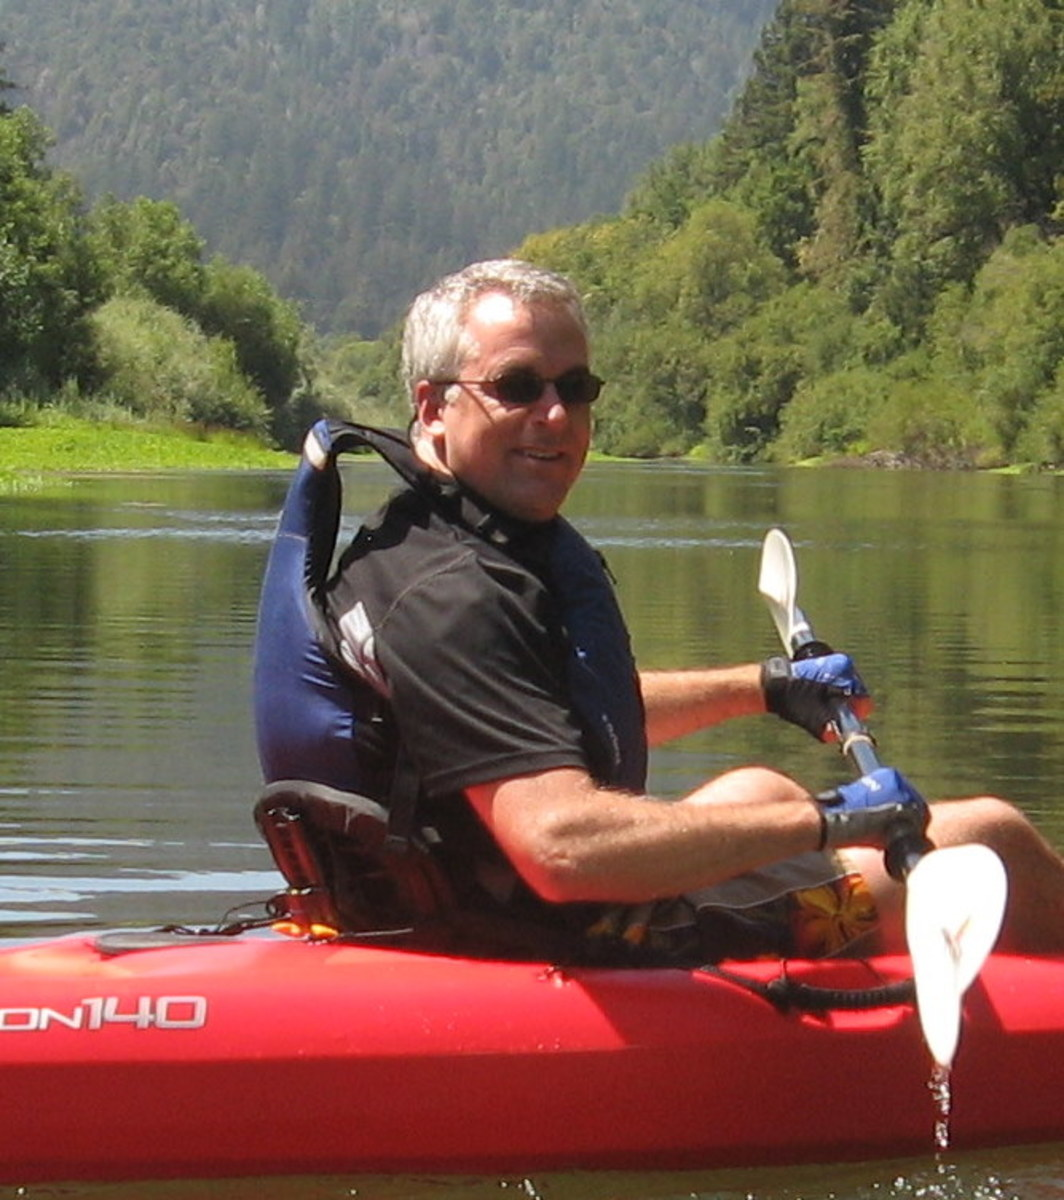 Kayaking on the glassy Russian River